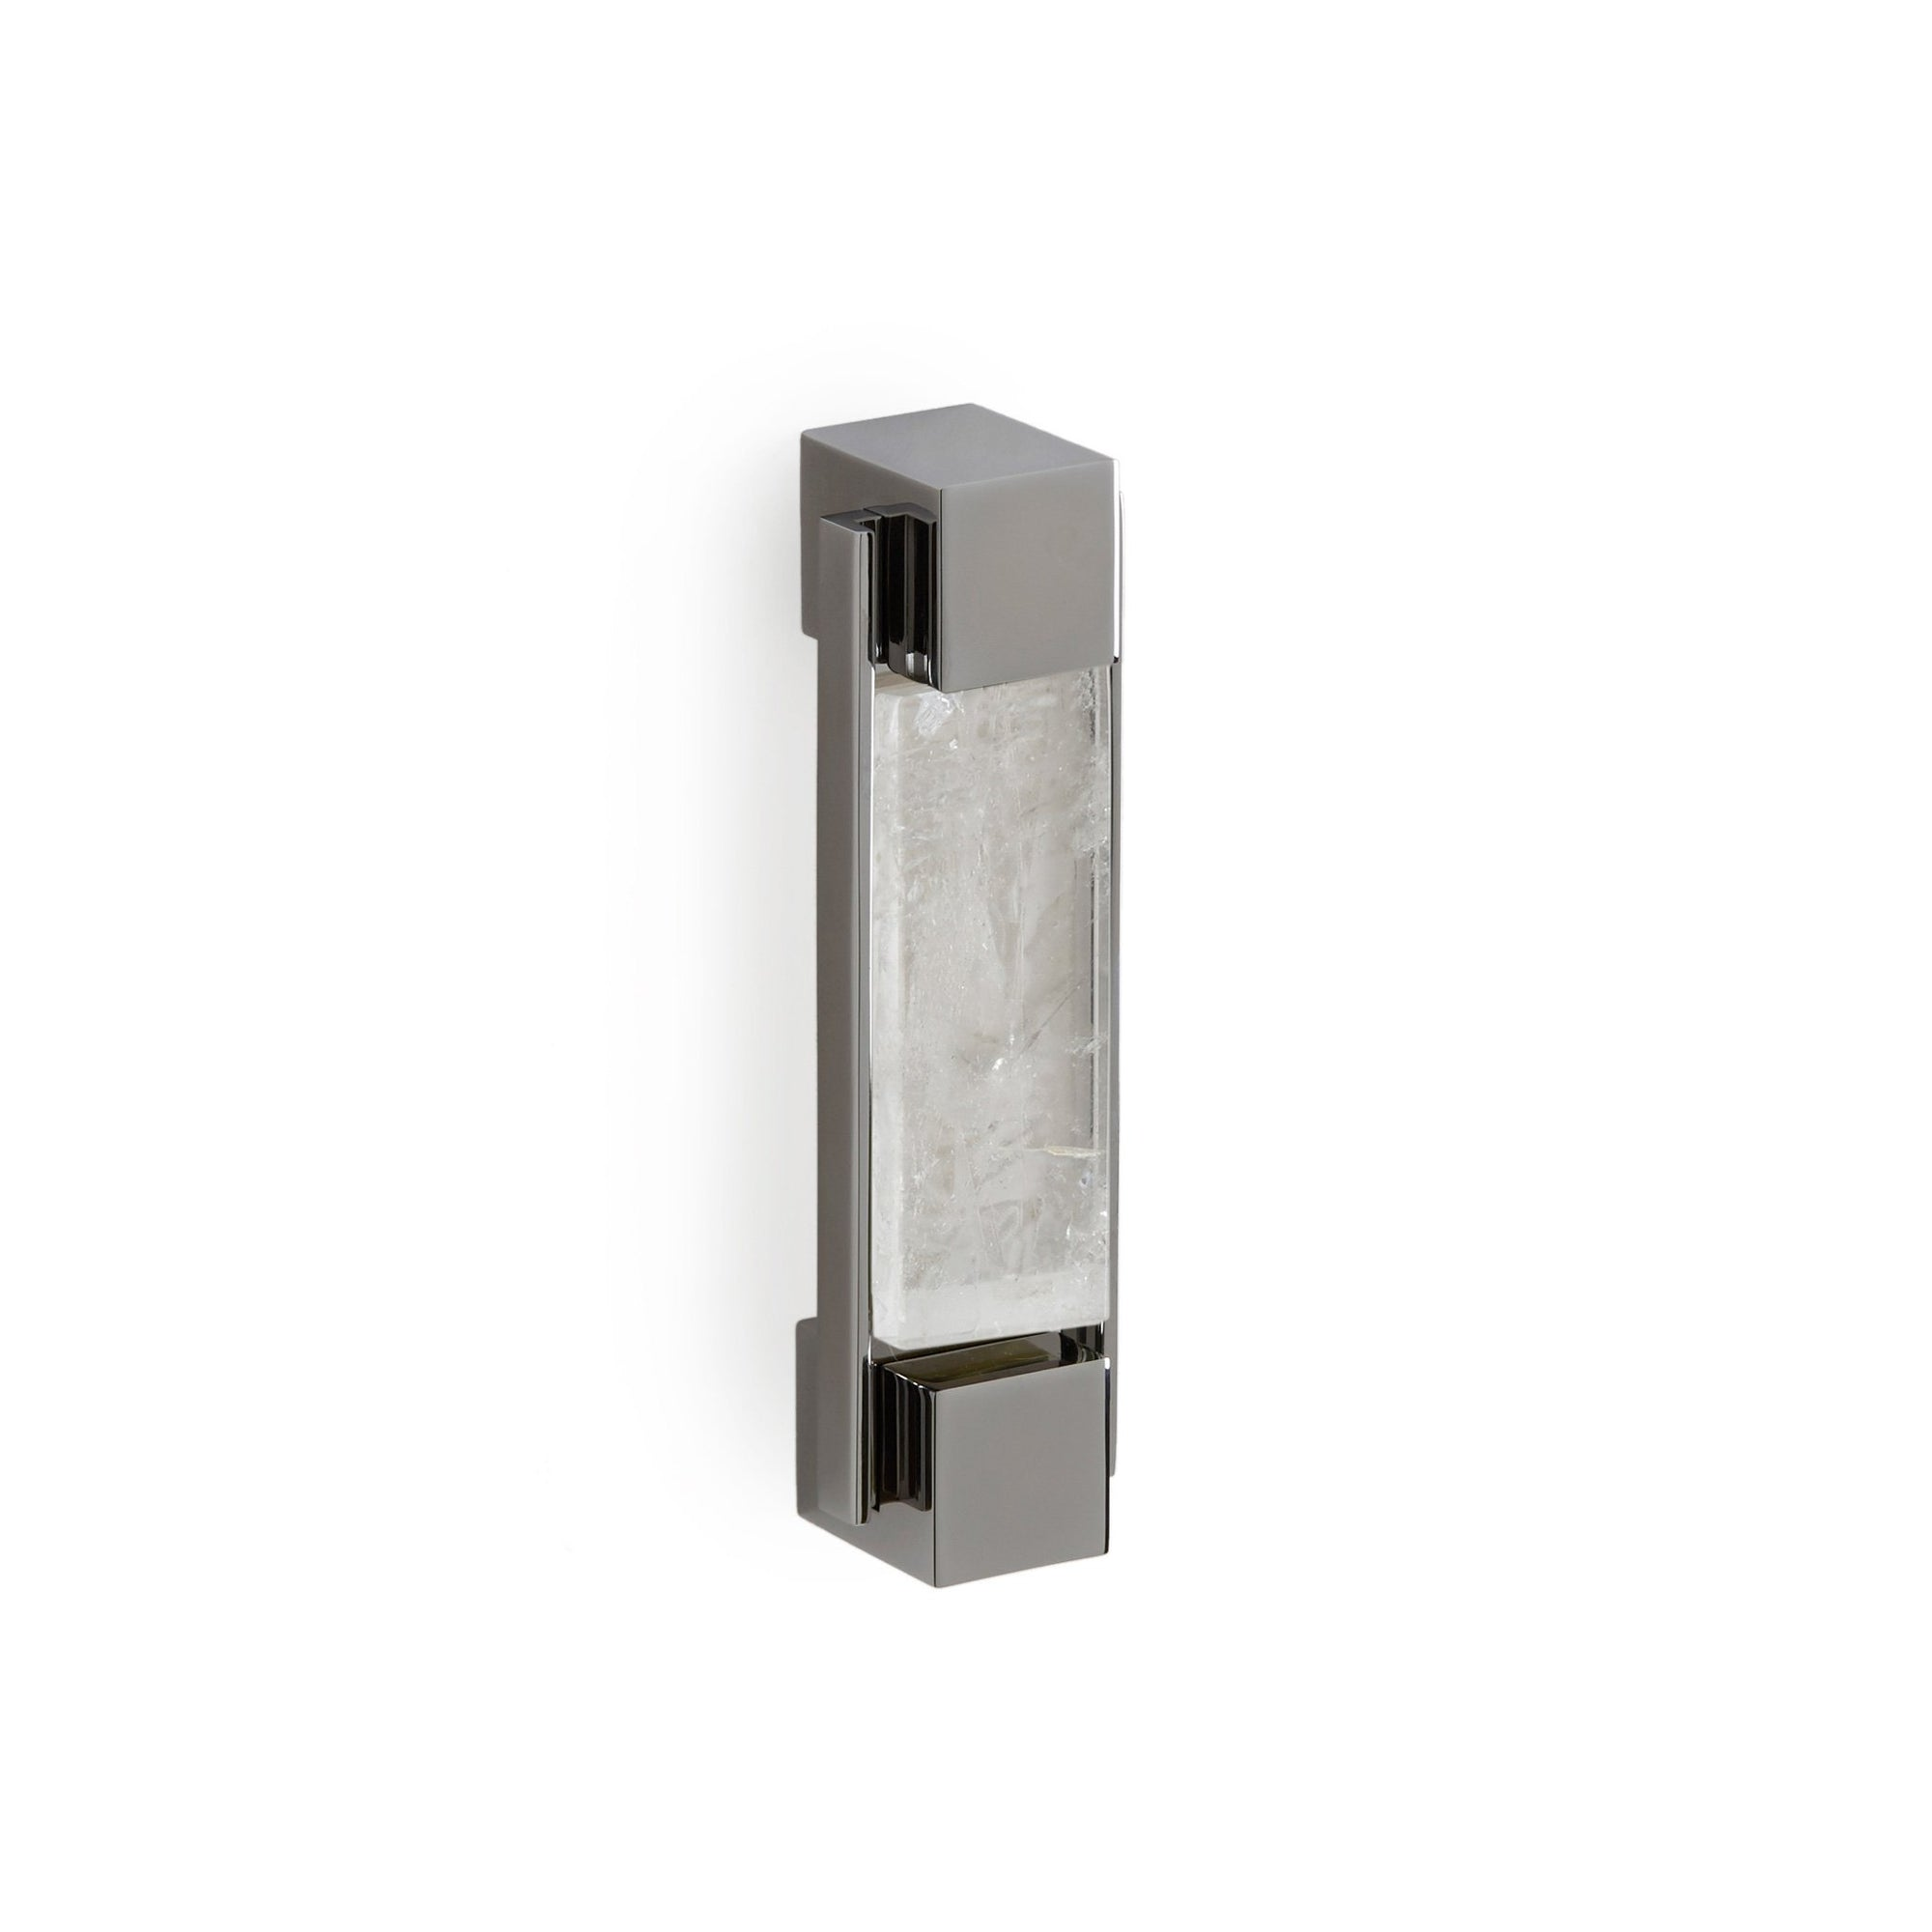 2120-BRPL-RKCR-CP Sherle Wagner International The Rock Crystal Insert Apollo Bar Pull in Polished Chrome metal finish